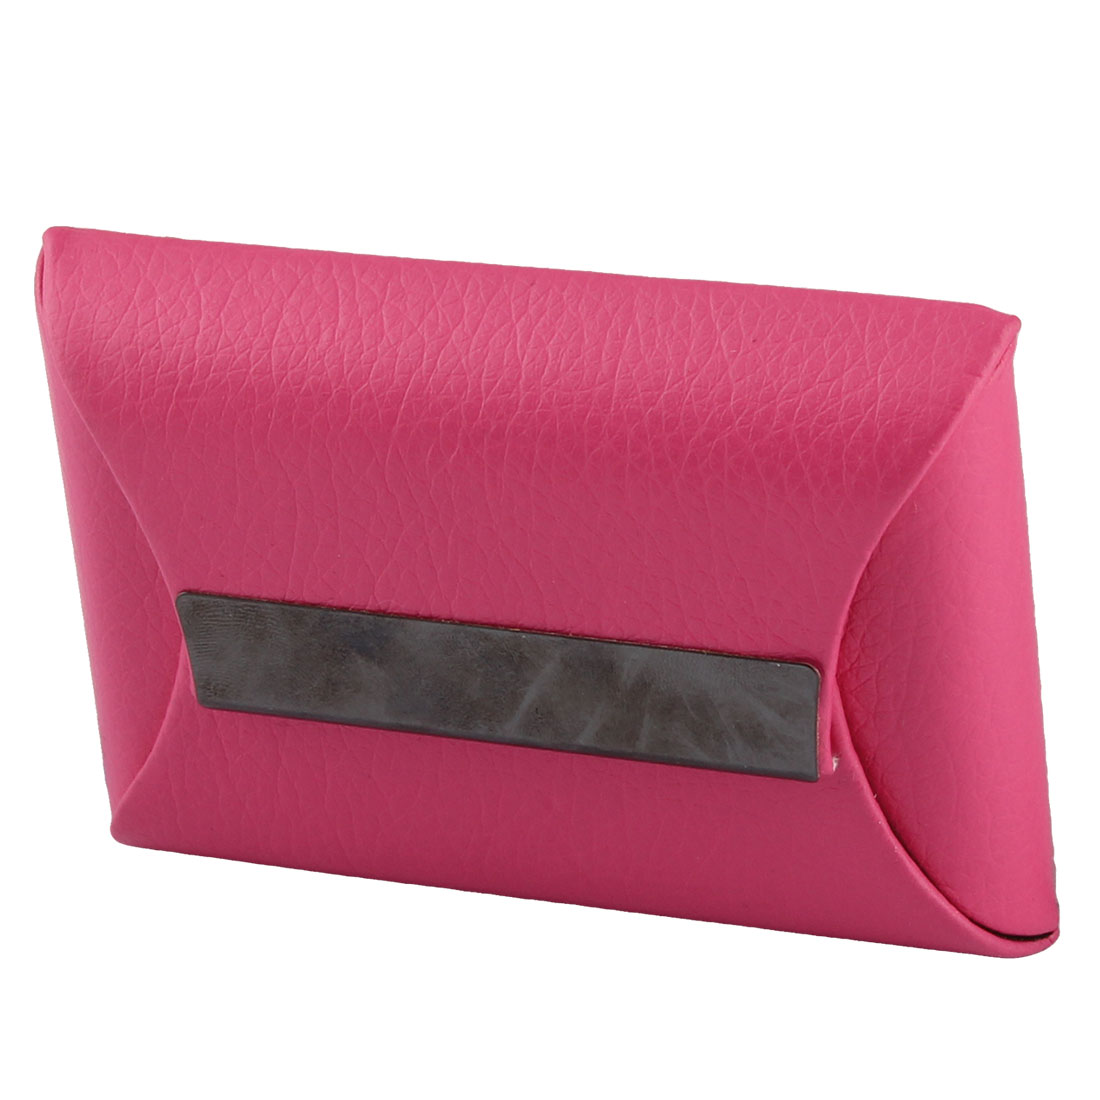 Business Cards Faux Leather Cover Rectangle Shaped Card Holder Fuchsia